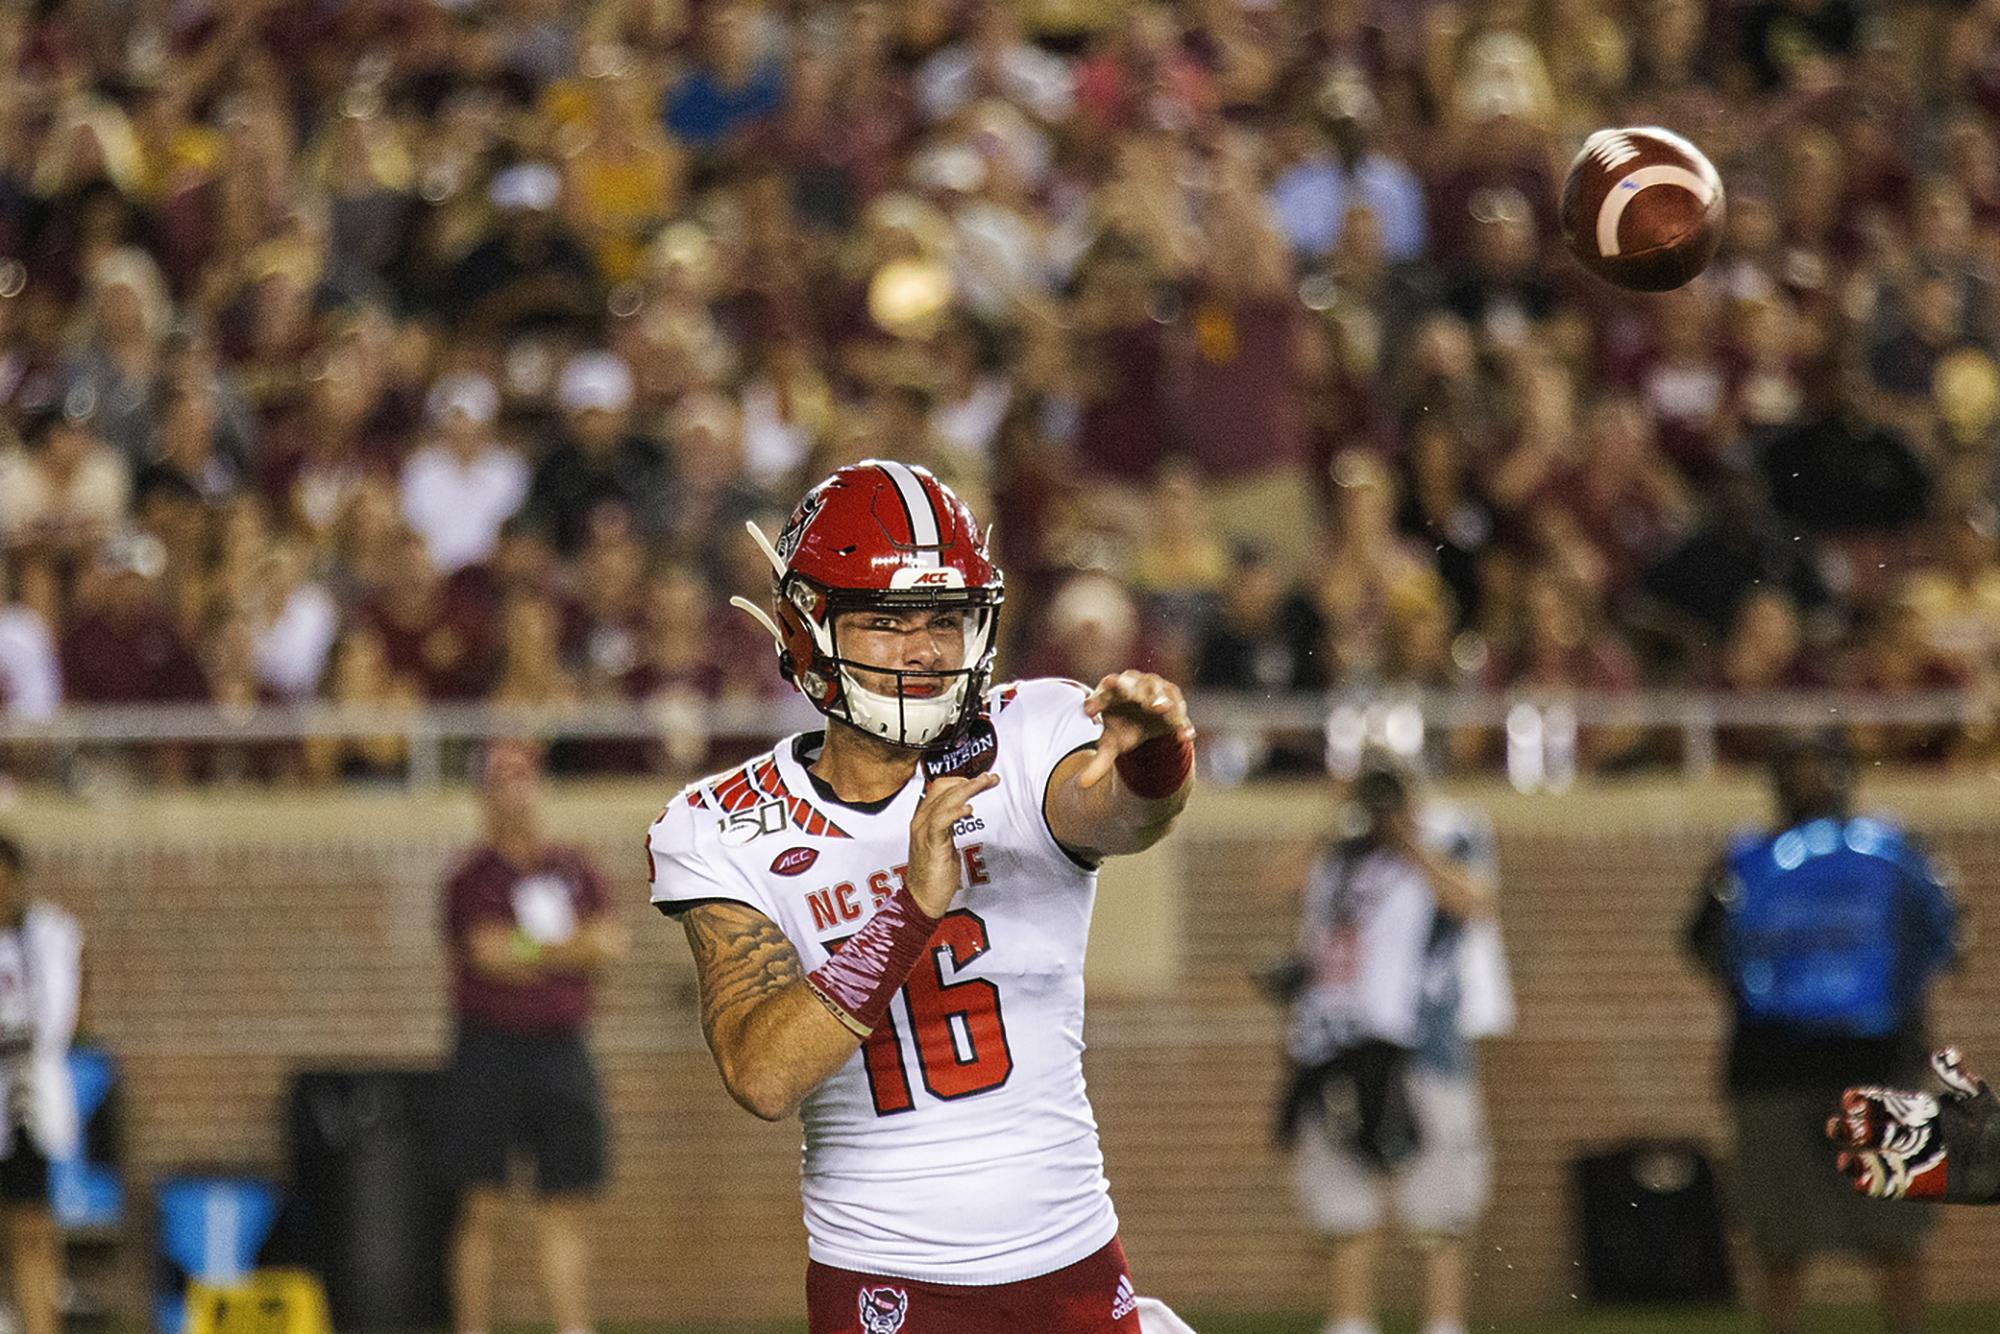 Get to know NC State, Syracuse football's next opponent